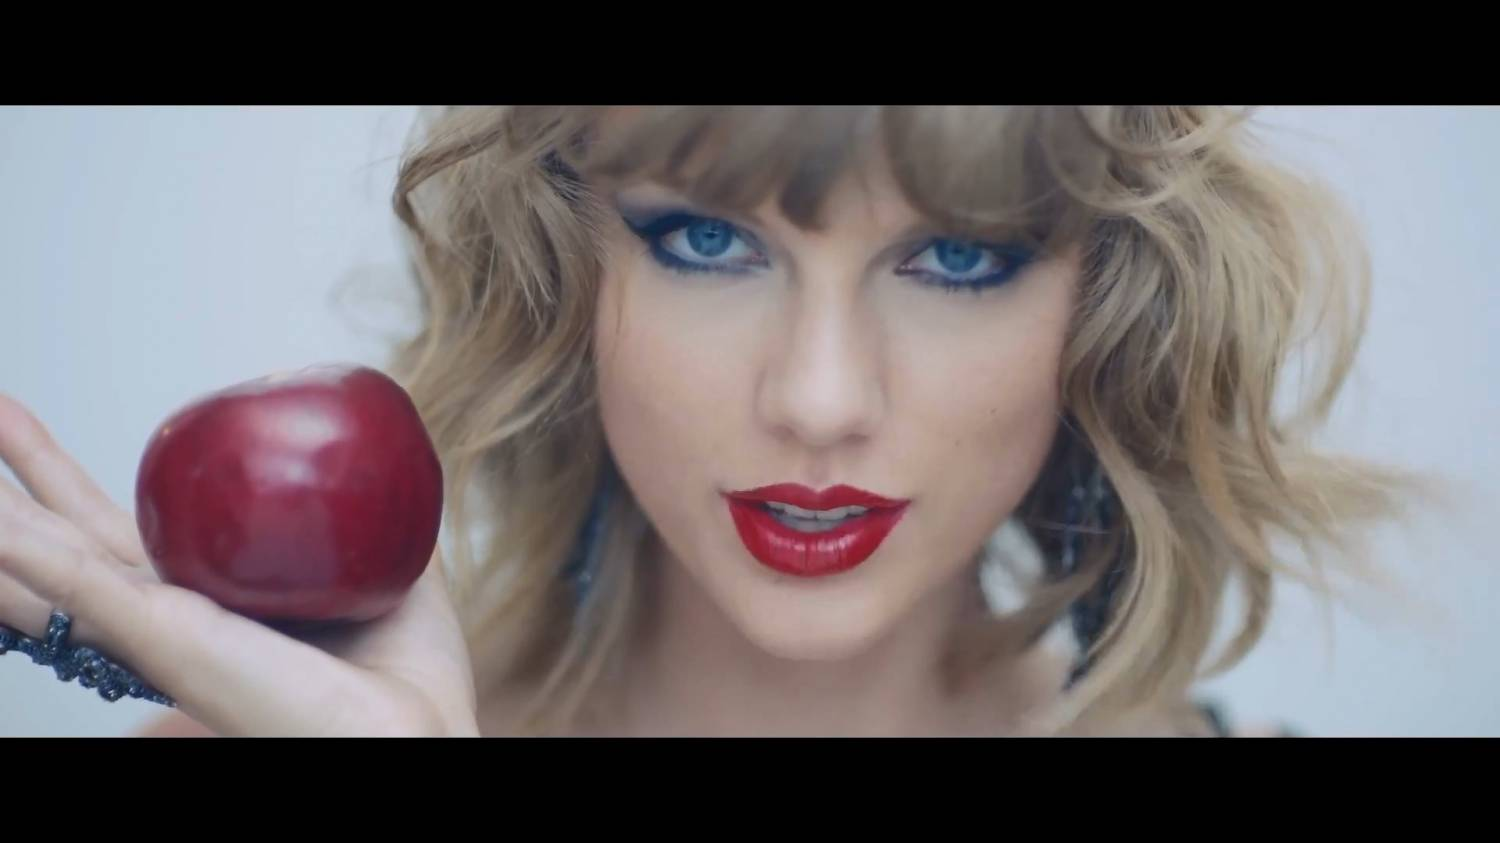 Taylor Swift - Blank Space (2014) HD 1080p